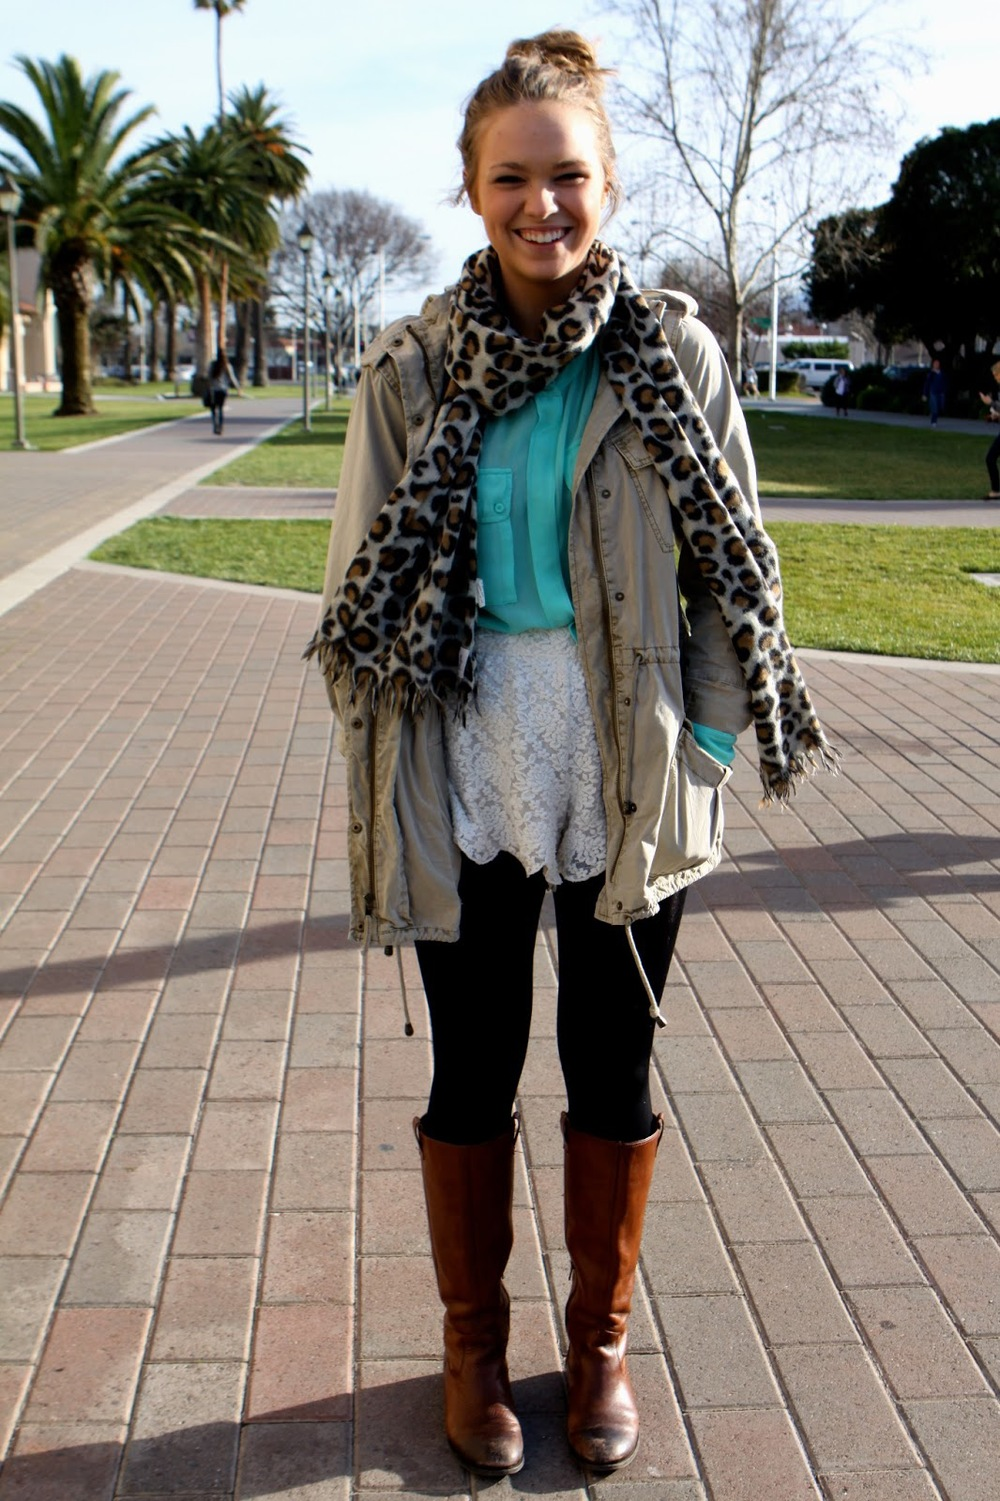 Carly, a Santa Clara University student wears a leopard print scarf and a khaki jacket over a teal loose shirt, a cream white lace skirt, black leggings and high brown boots.